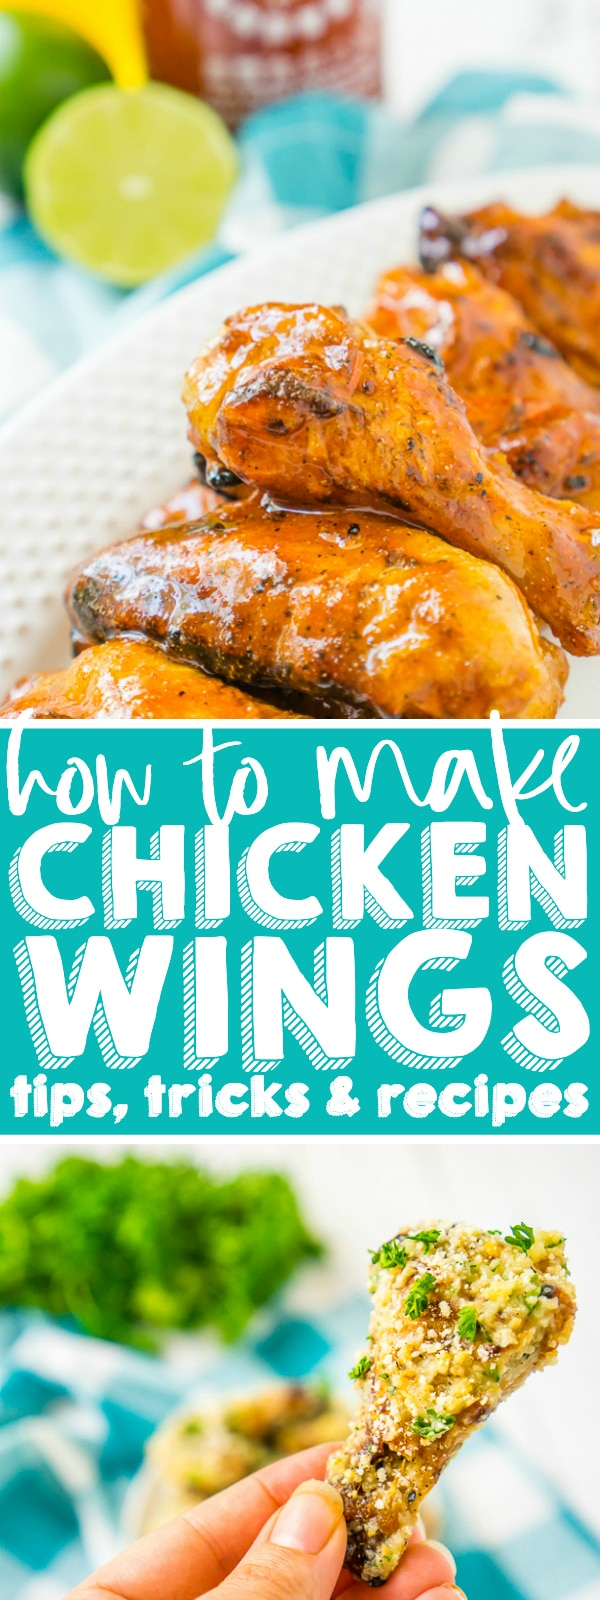 HOW TO COOK CHICKEN WINGS - Chicken wings is a meal time and game day favorite for us, especially with so many amazing chicken wing sauces recipes to try! I'm sharing tons of tips, tricks and instructions on how to cook chicken wings, including on the grill, in the oven, in the slow cooker and in the air fryer. | THE LOVE NERDS #chickenwingsaucerecipe #chickenwings #grilledchickenwings #bakedchickenwings